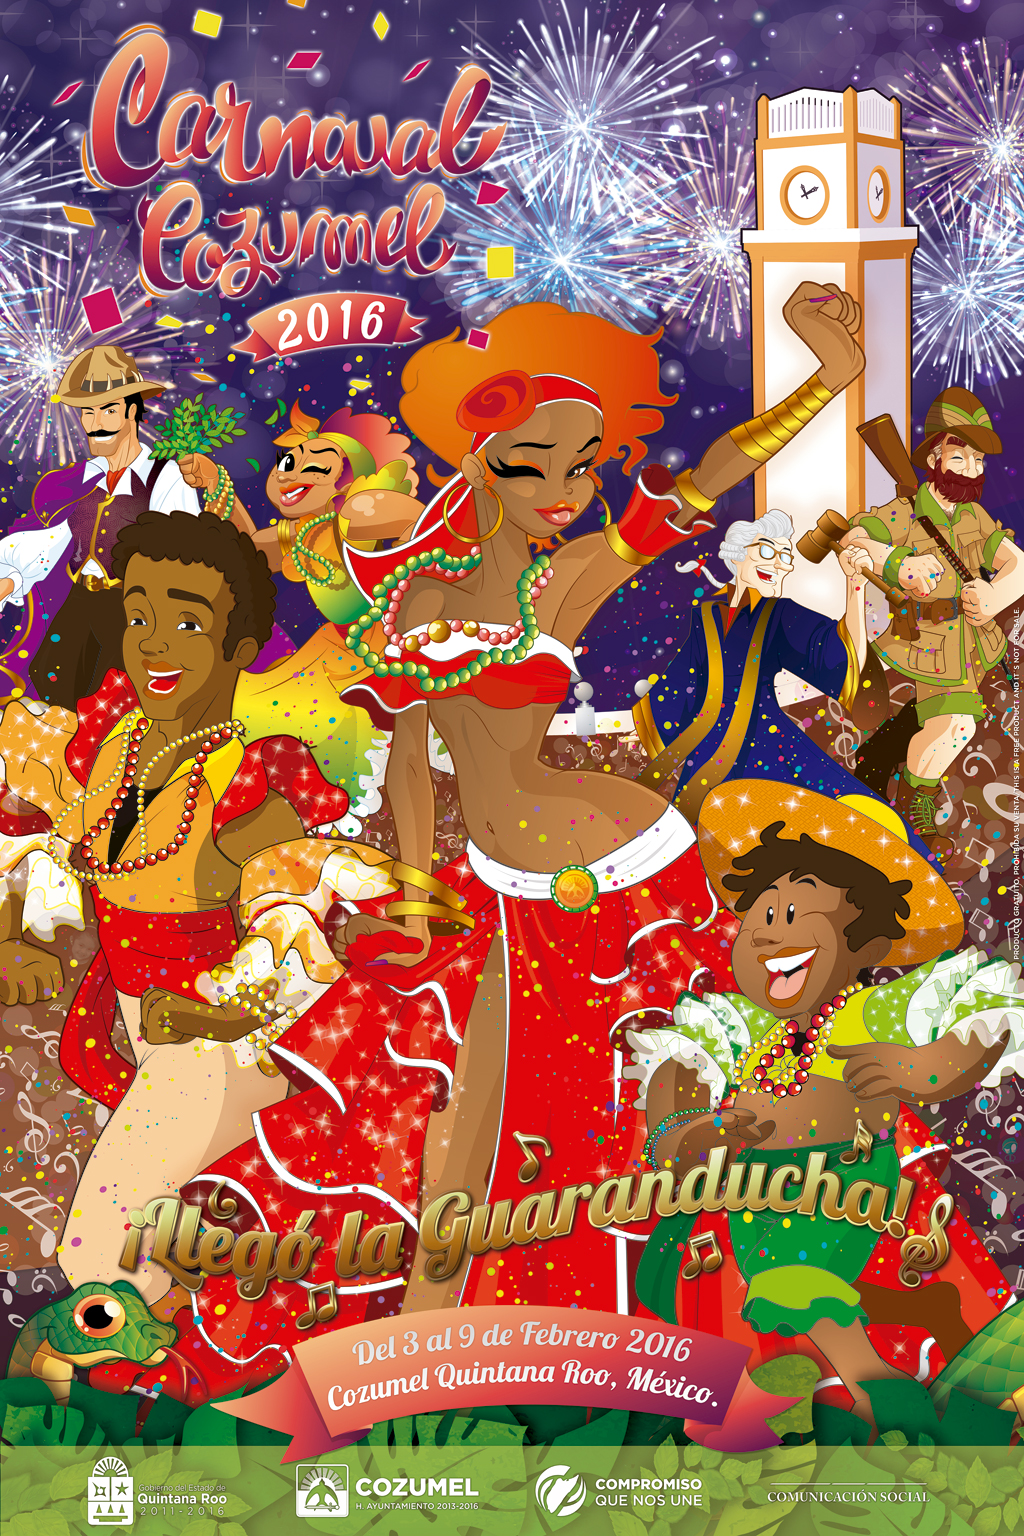 Carnaval 2016 Official Poster